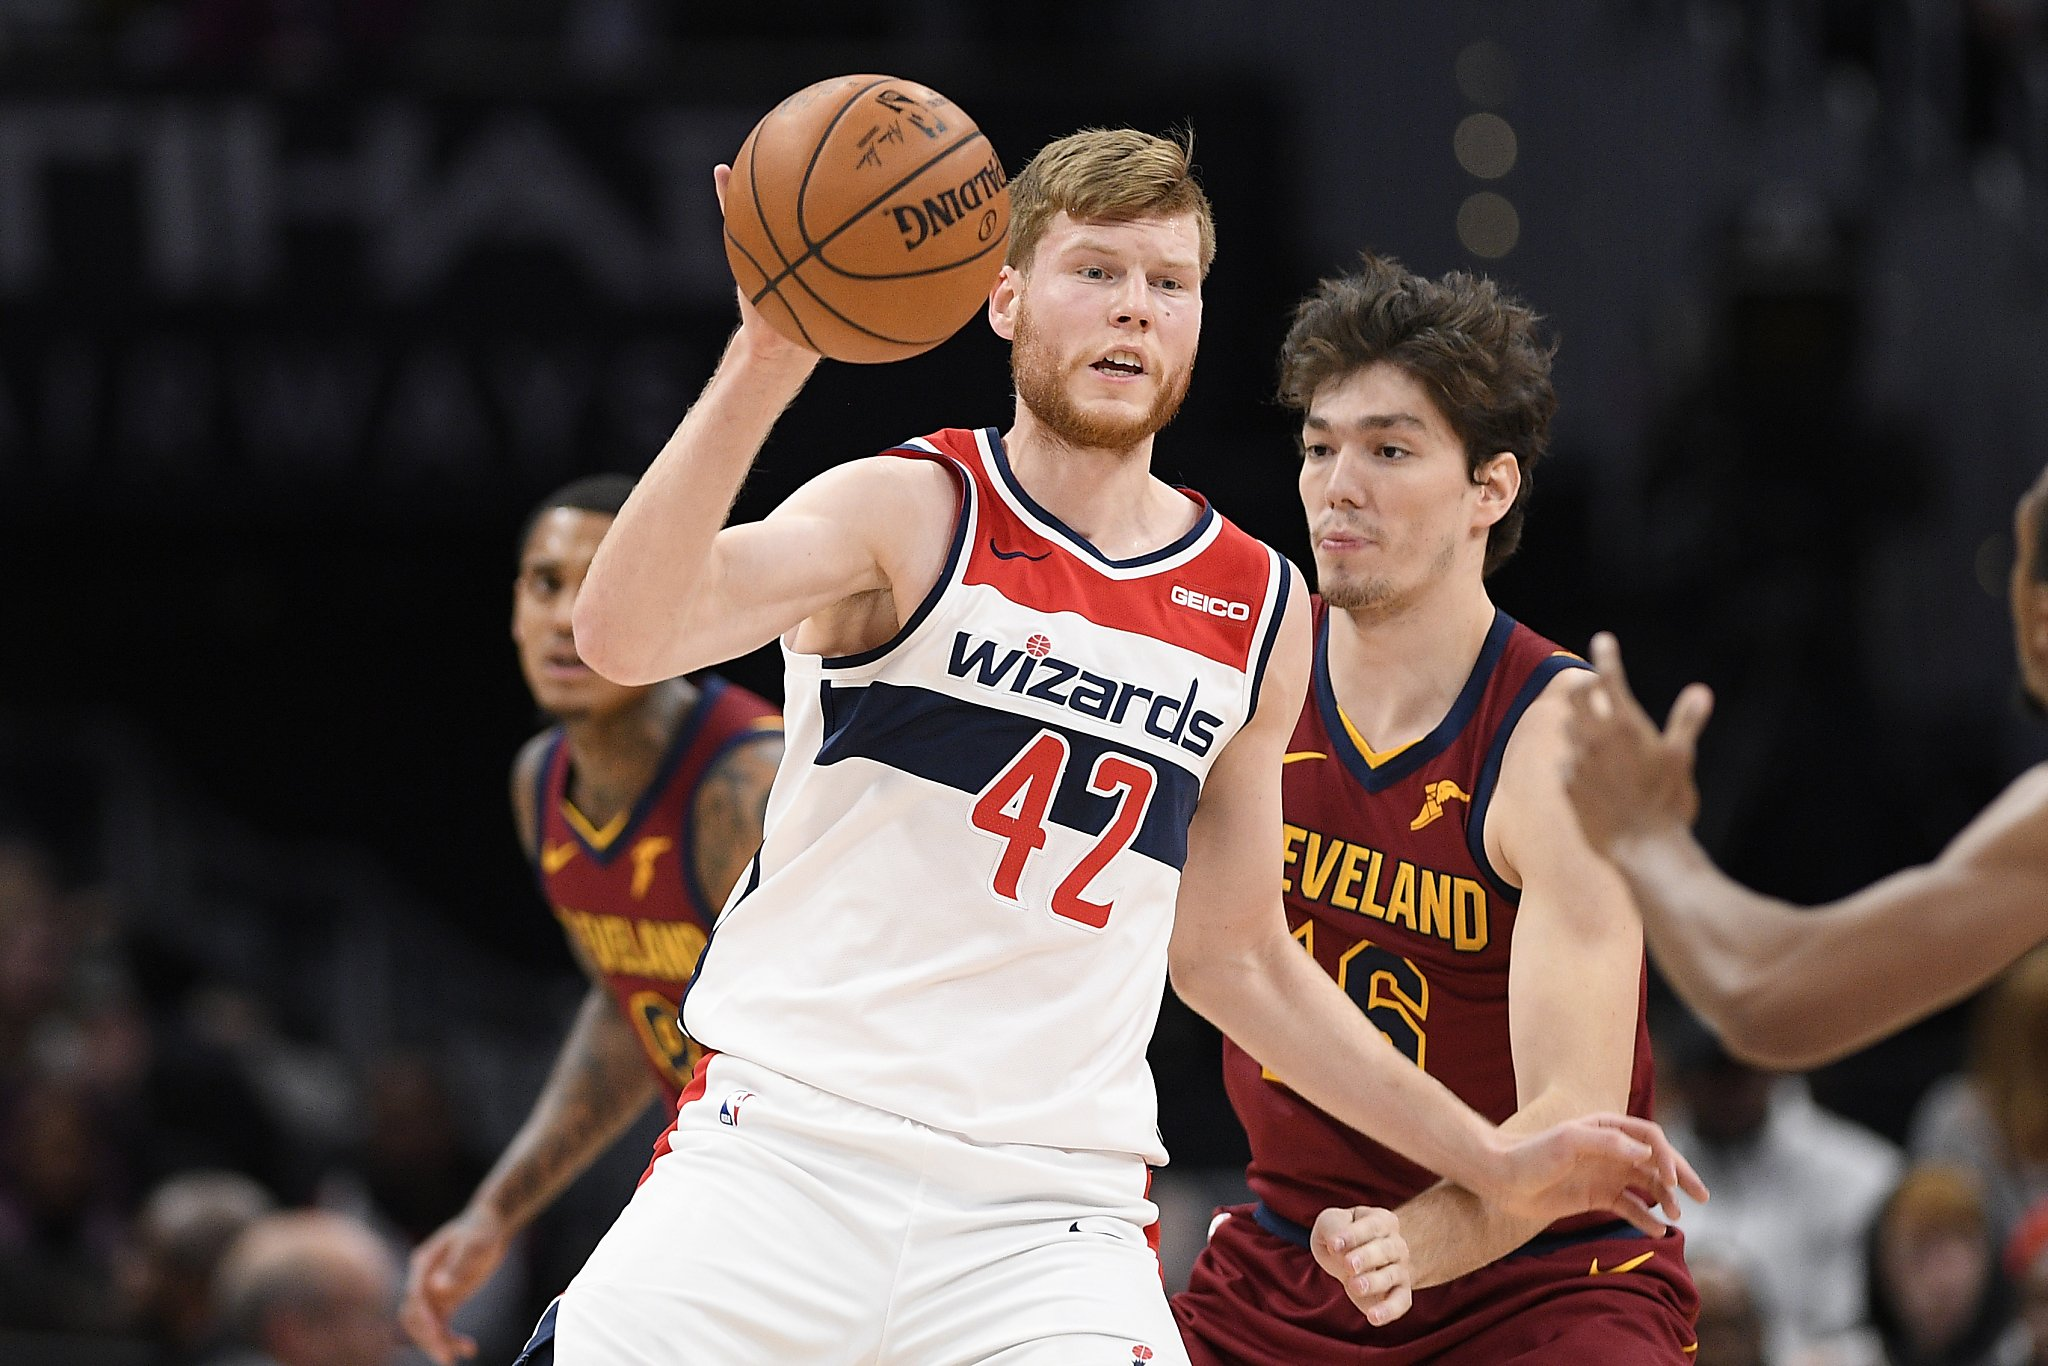 Given green light to shoot deep 3s, Bertans thrives with Wizards